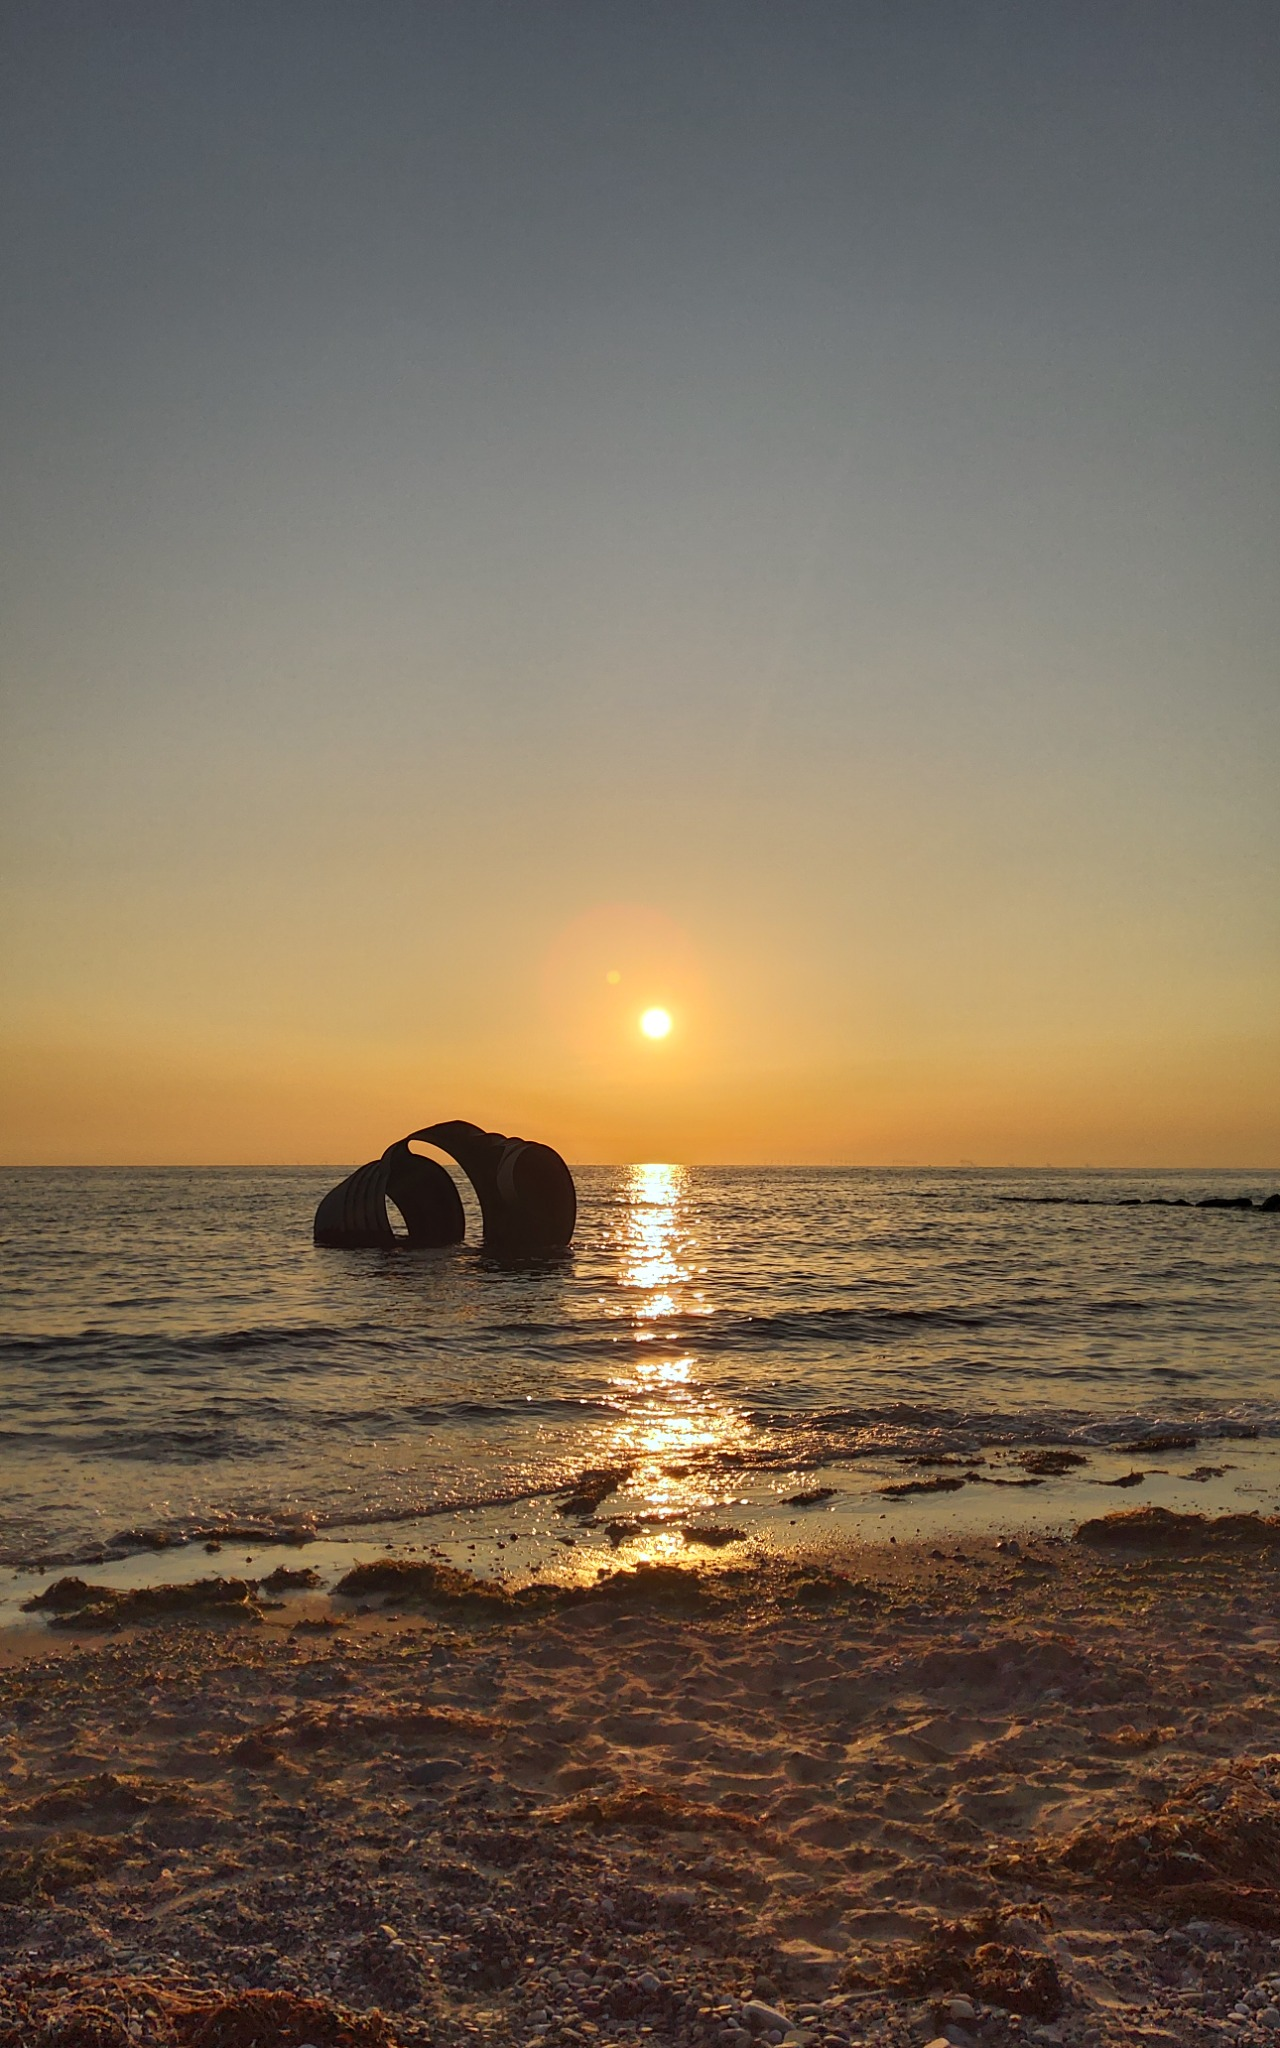 Sunset over the sea at Cleveleys beach